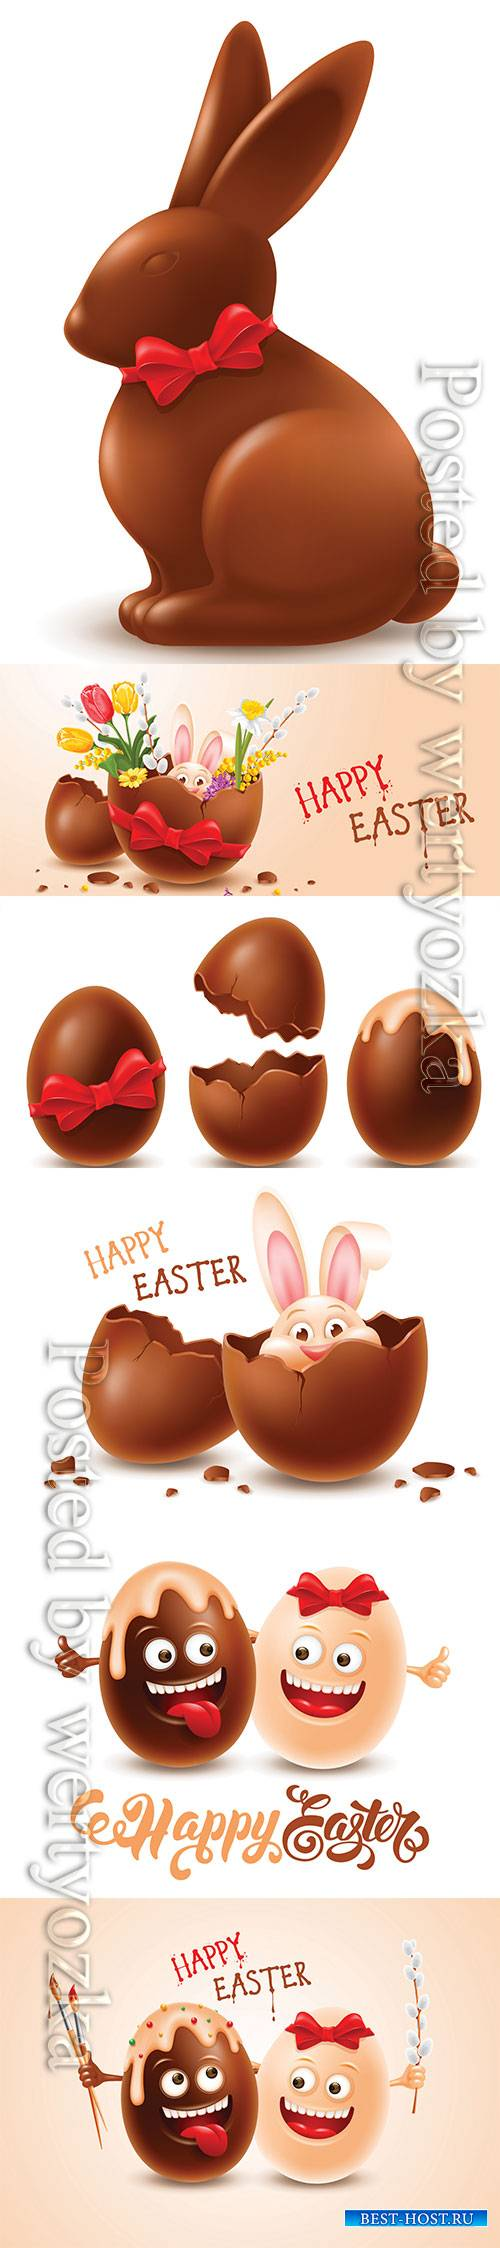 Easter chocolate egg with cheerful easter bunny